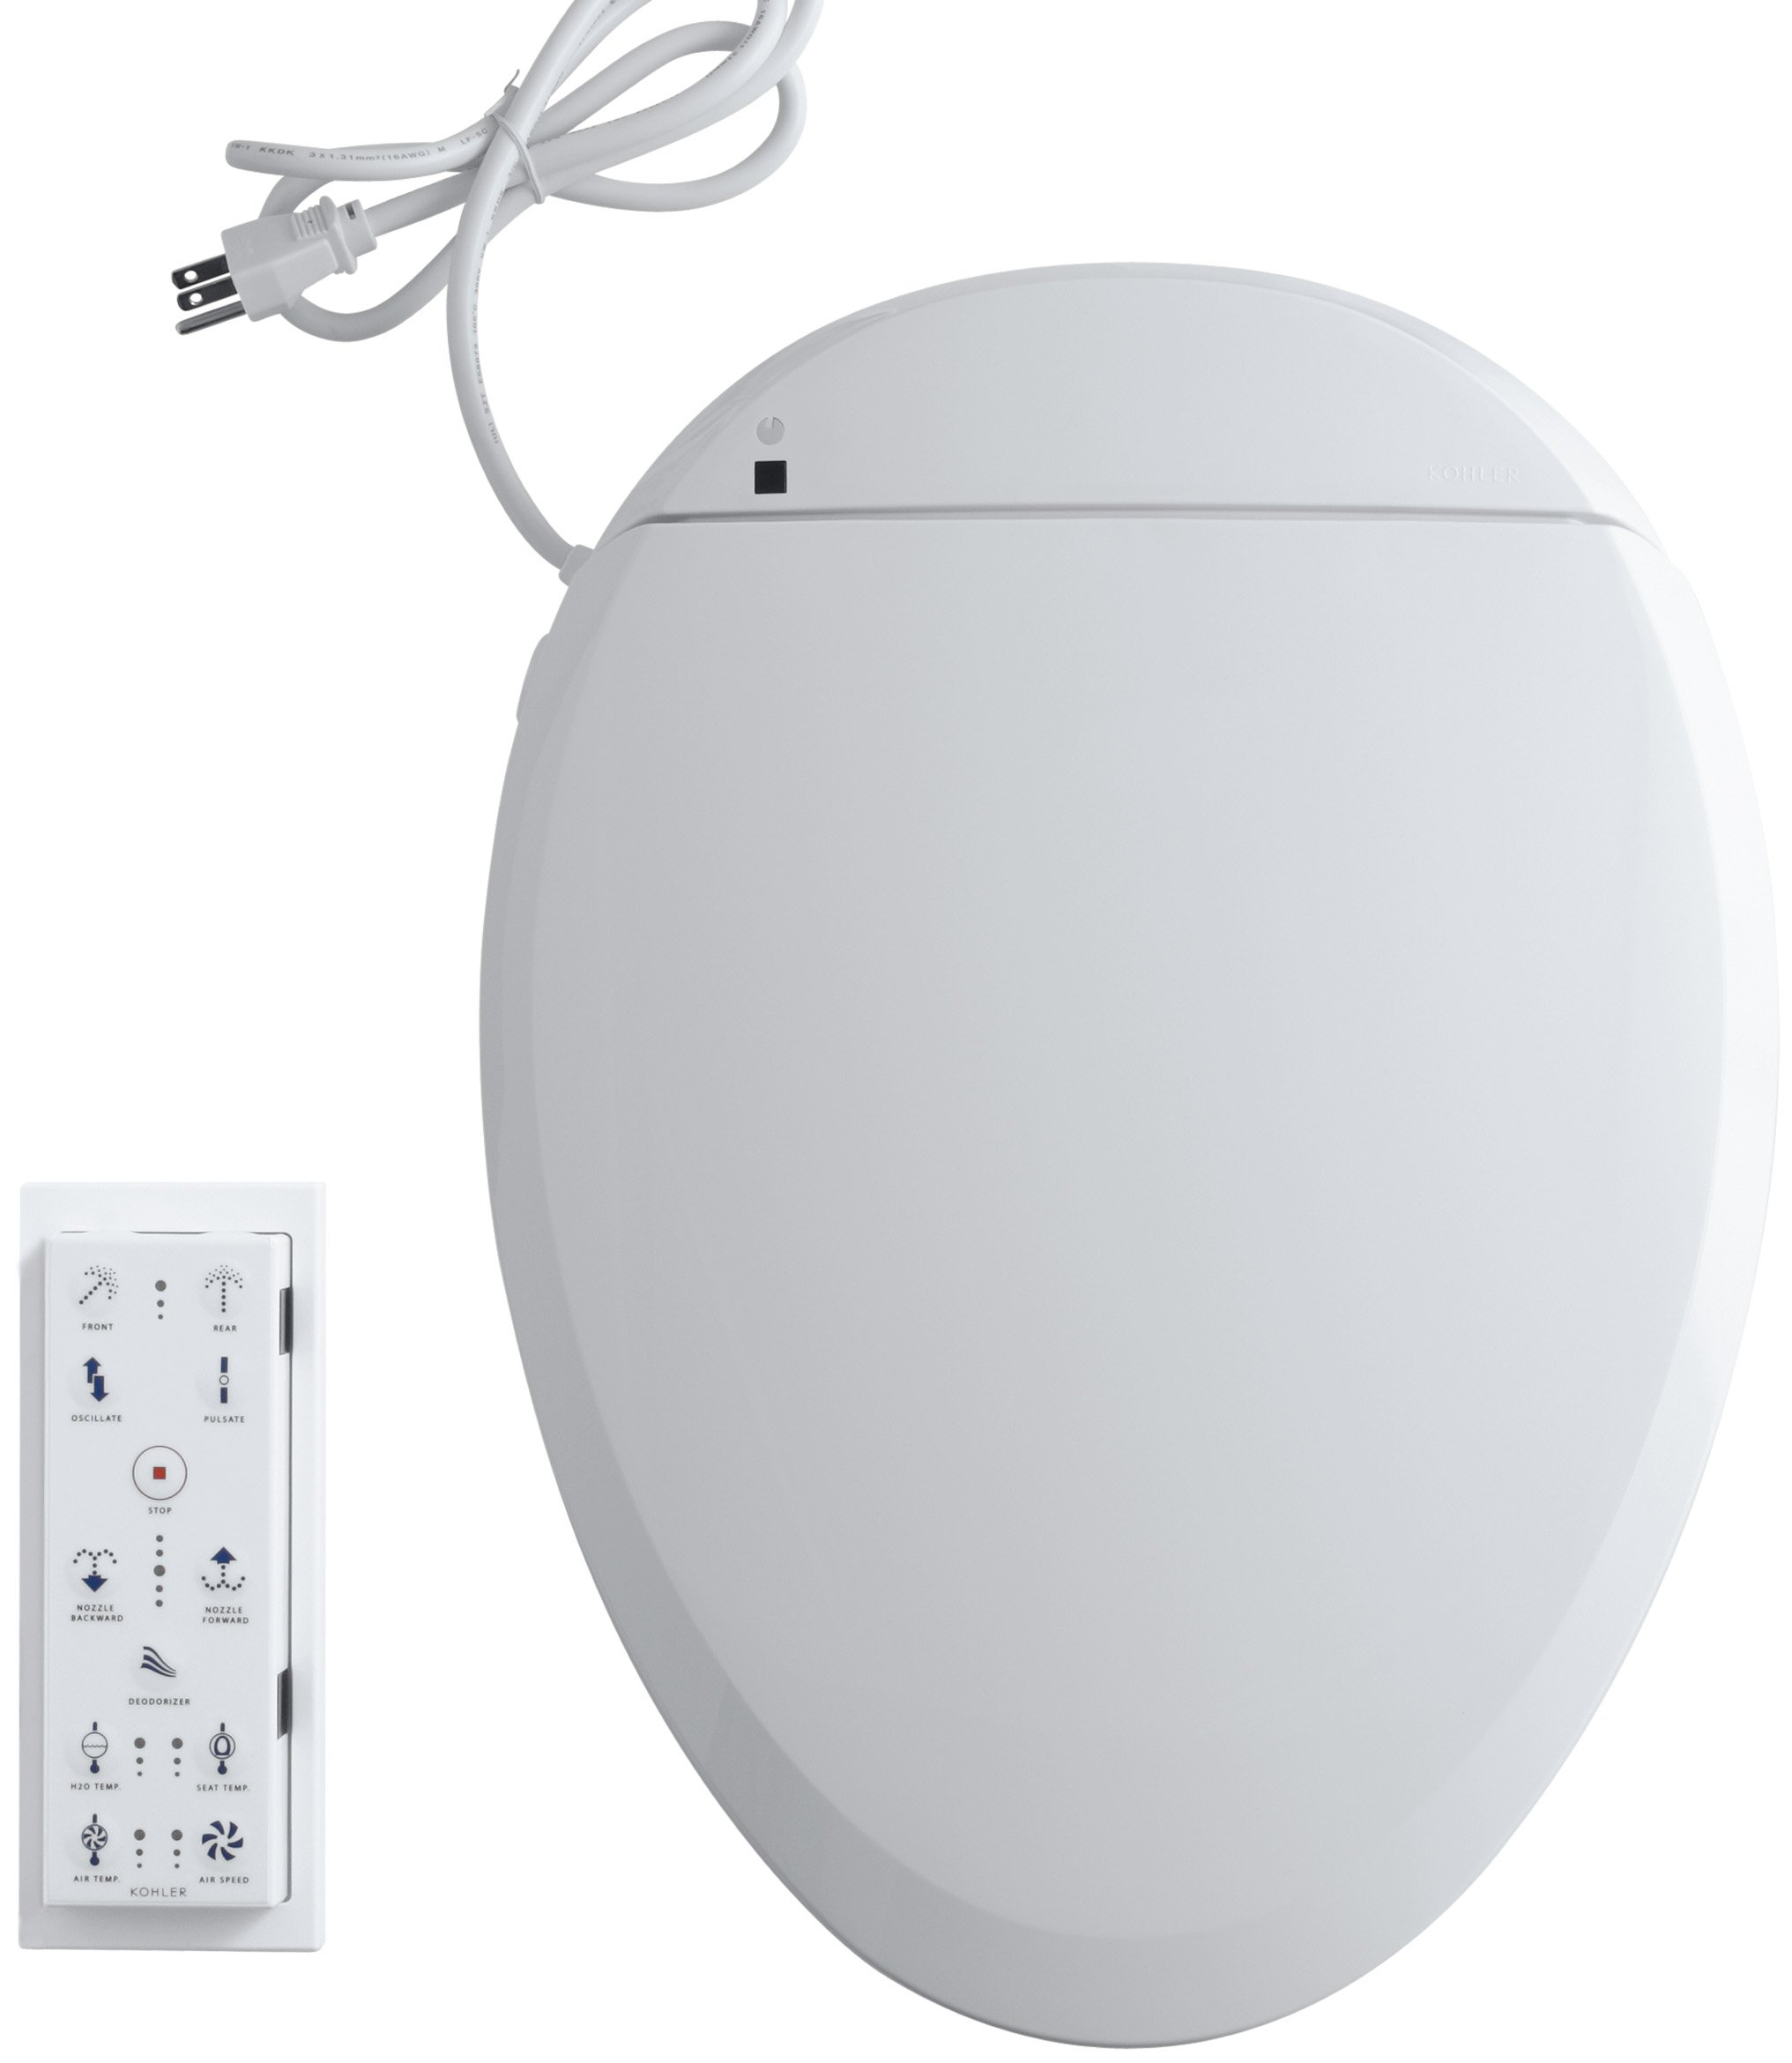 KOHLER K-4744-0 C3-201 Elongated Bidet Toilet Seat with In-Line Heater and Remote Controls, White by Kohler